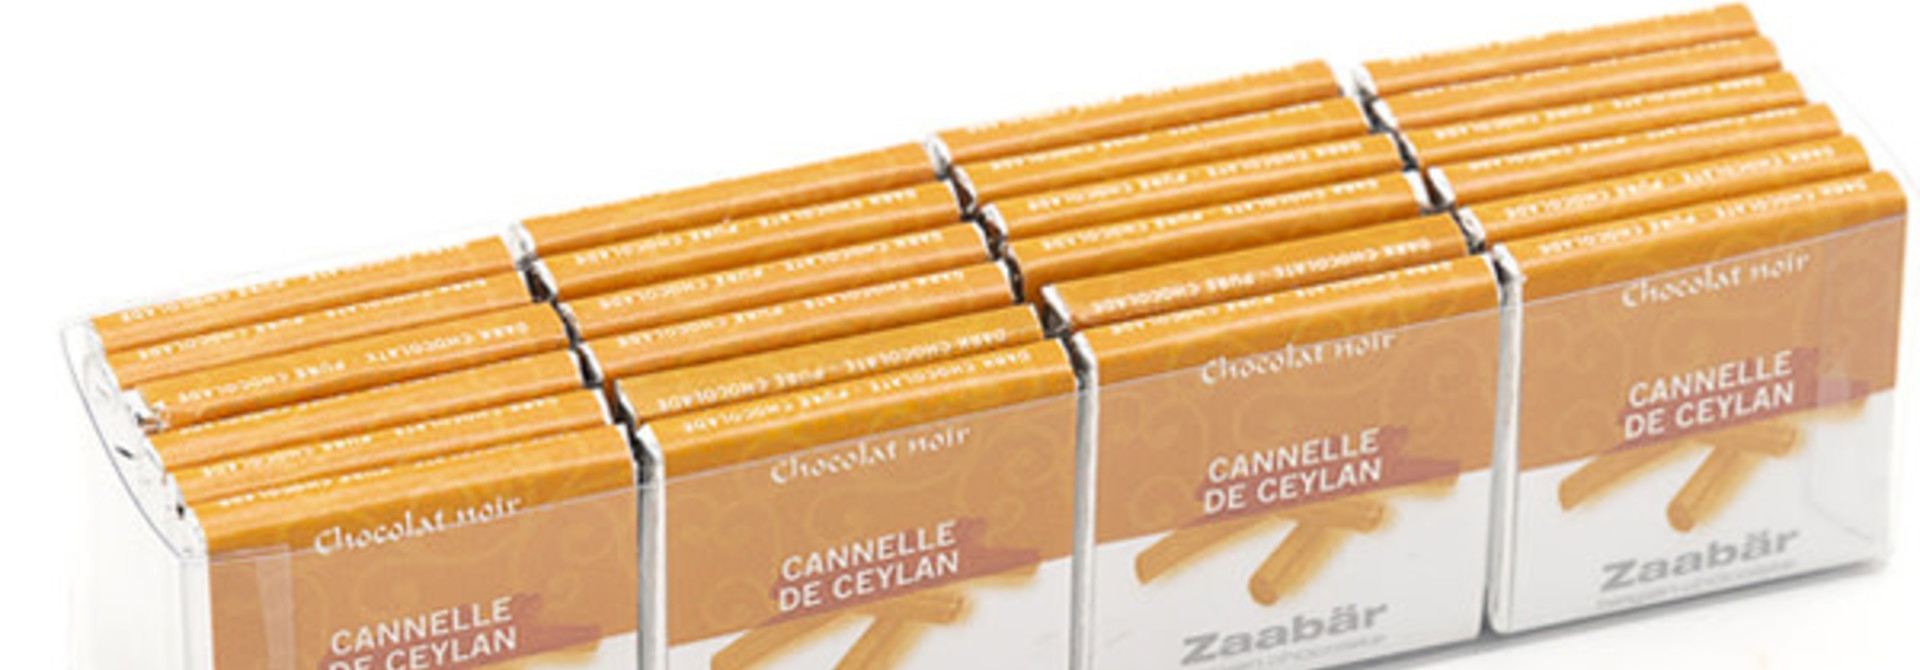 Noir cannelle 24 pieces